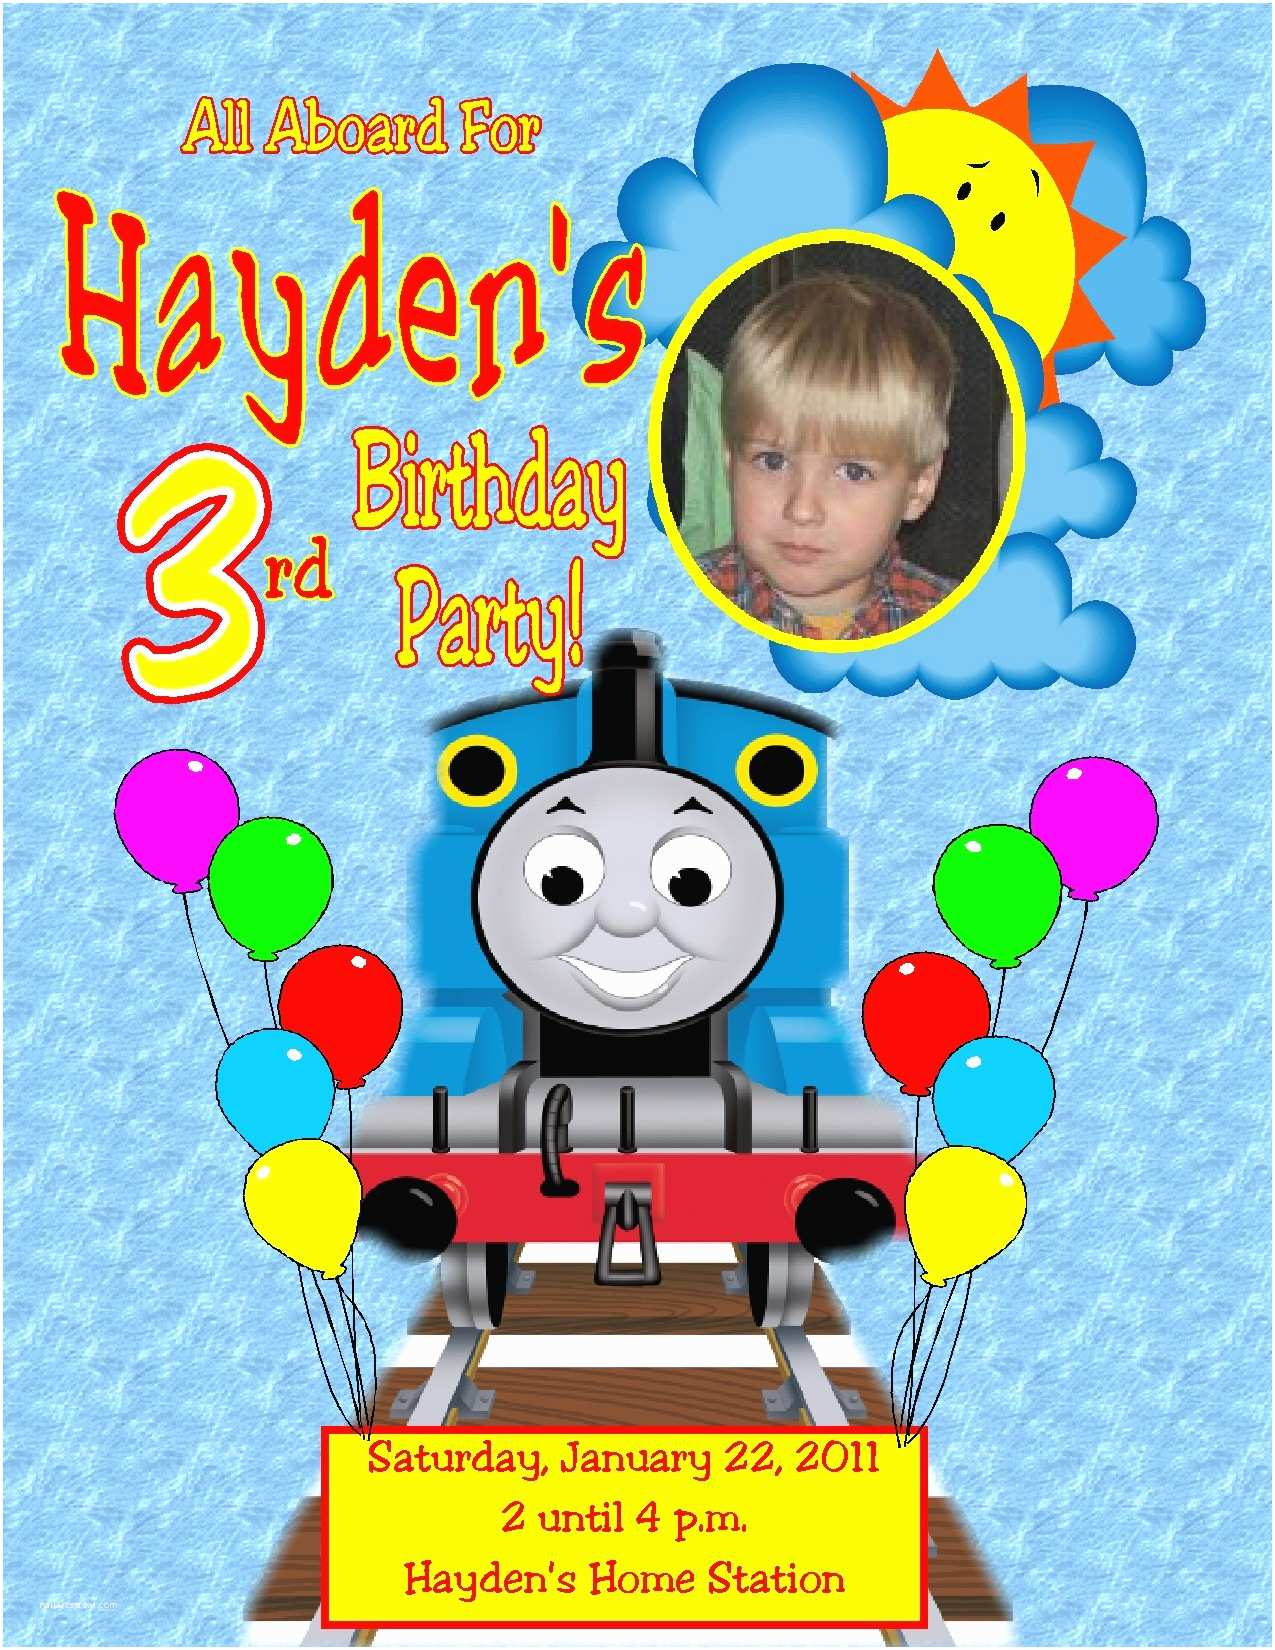 Thomas the Train Birthday Invitations Thomas the Train All Aboard Birthday Invitation $1 09